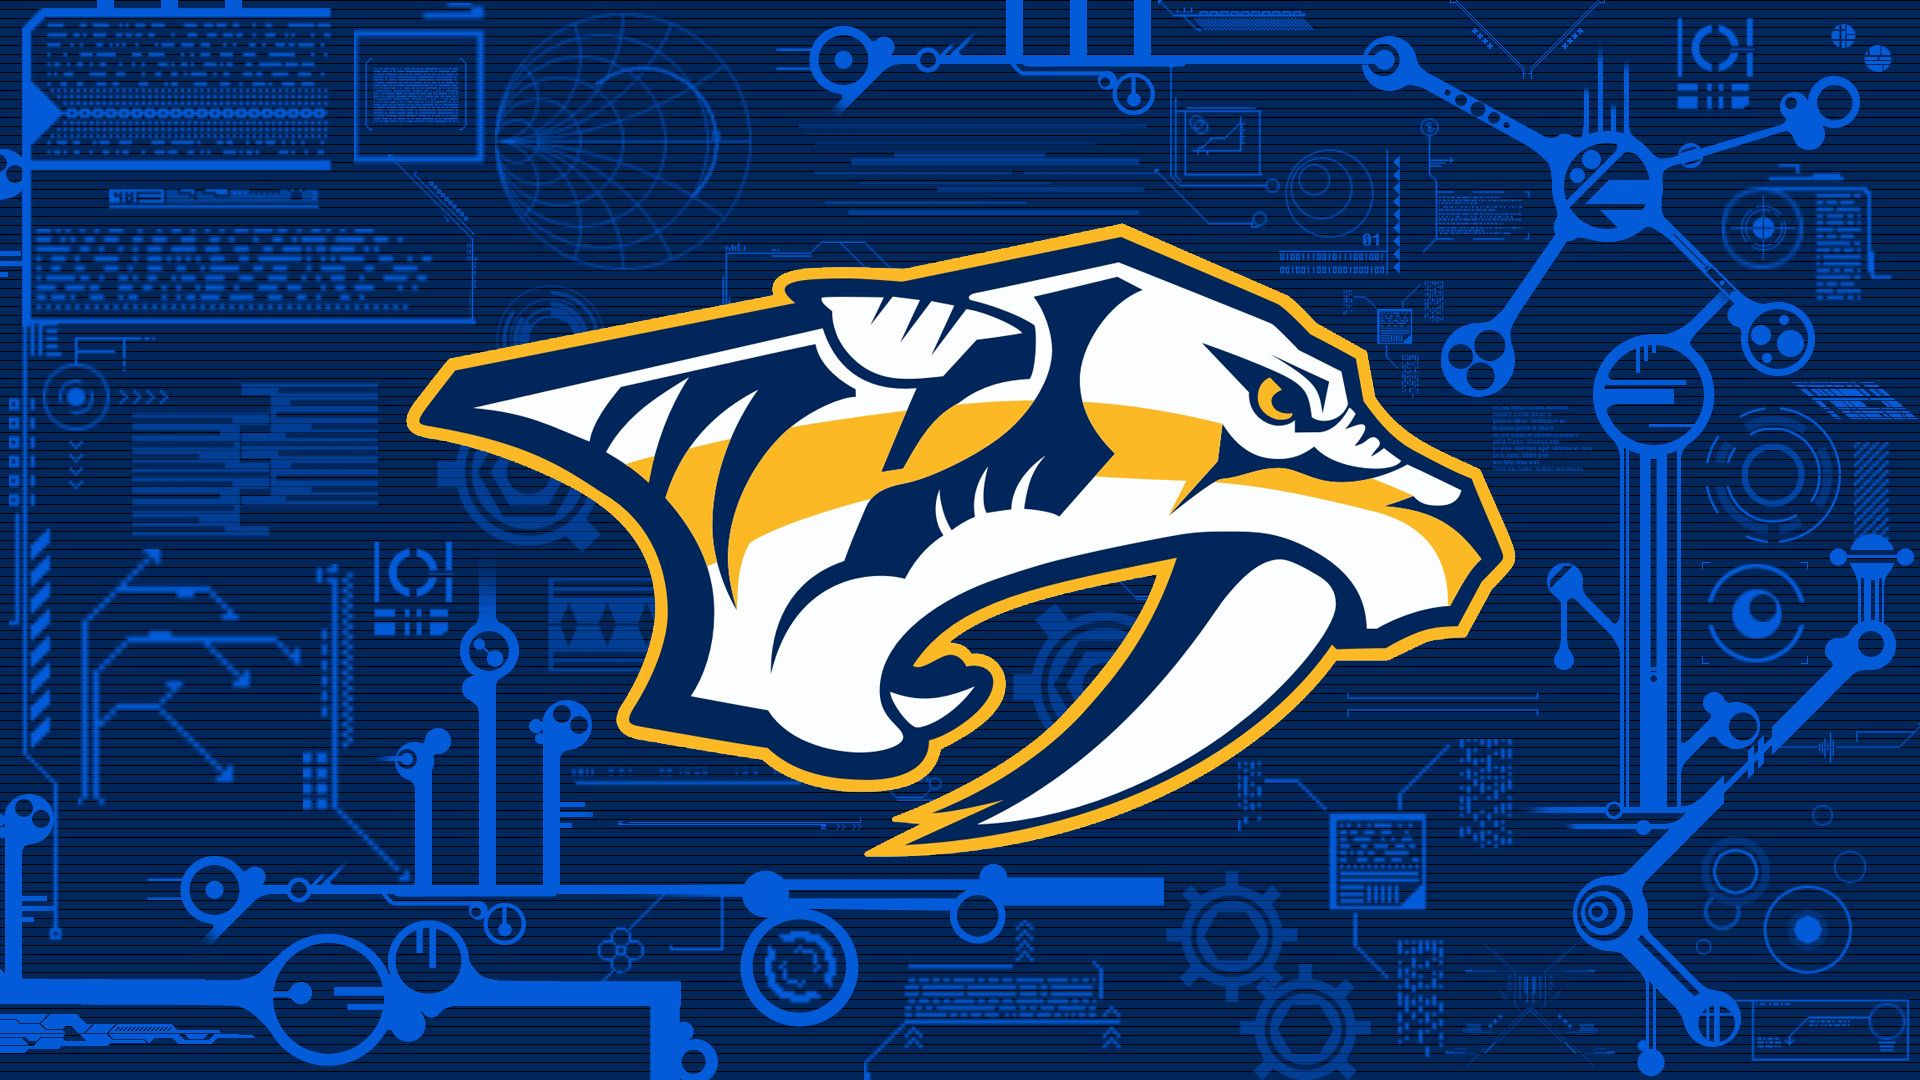 Nashville predators desktop wallpaper wallpapersafari nashville predators wallpapers hd wallpapers base 1920x1080 sciox Choice Image